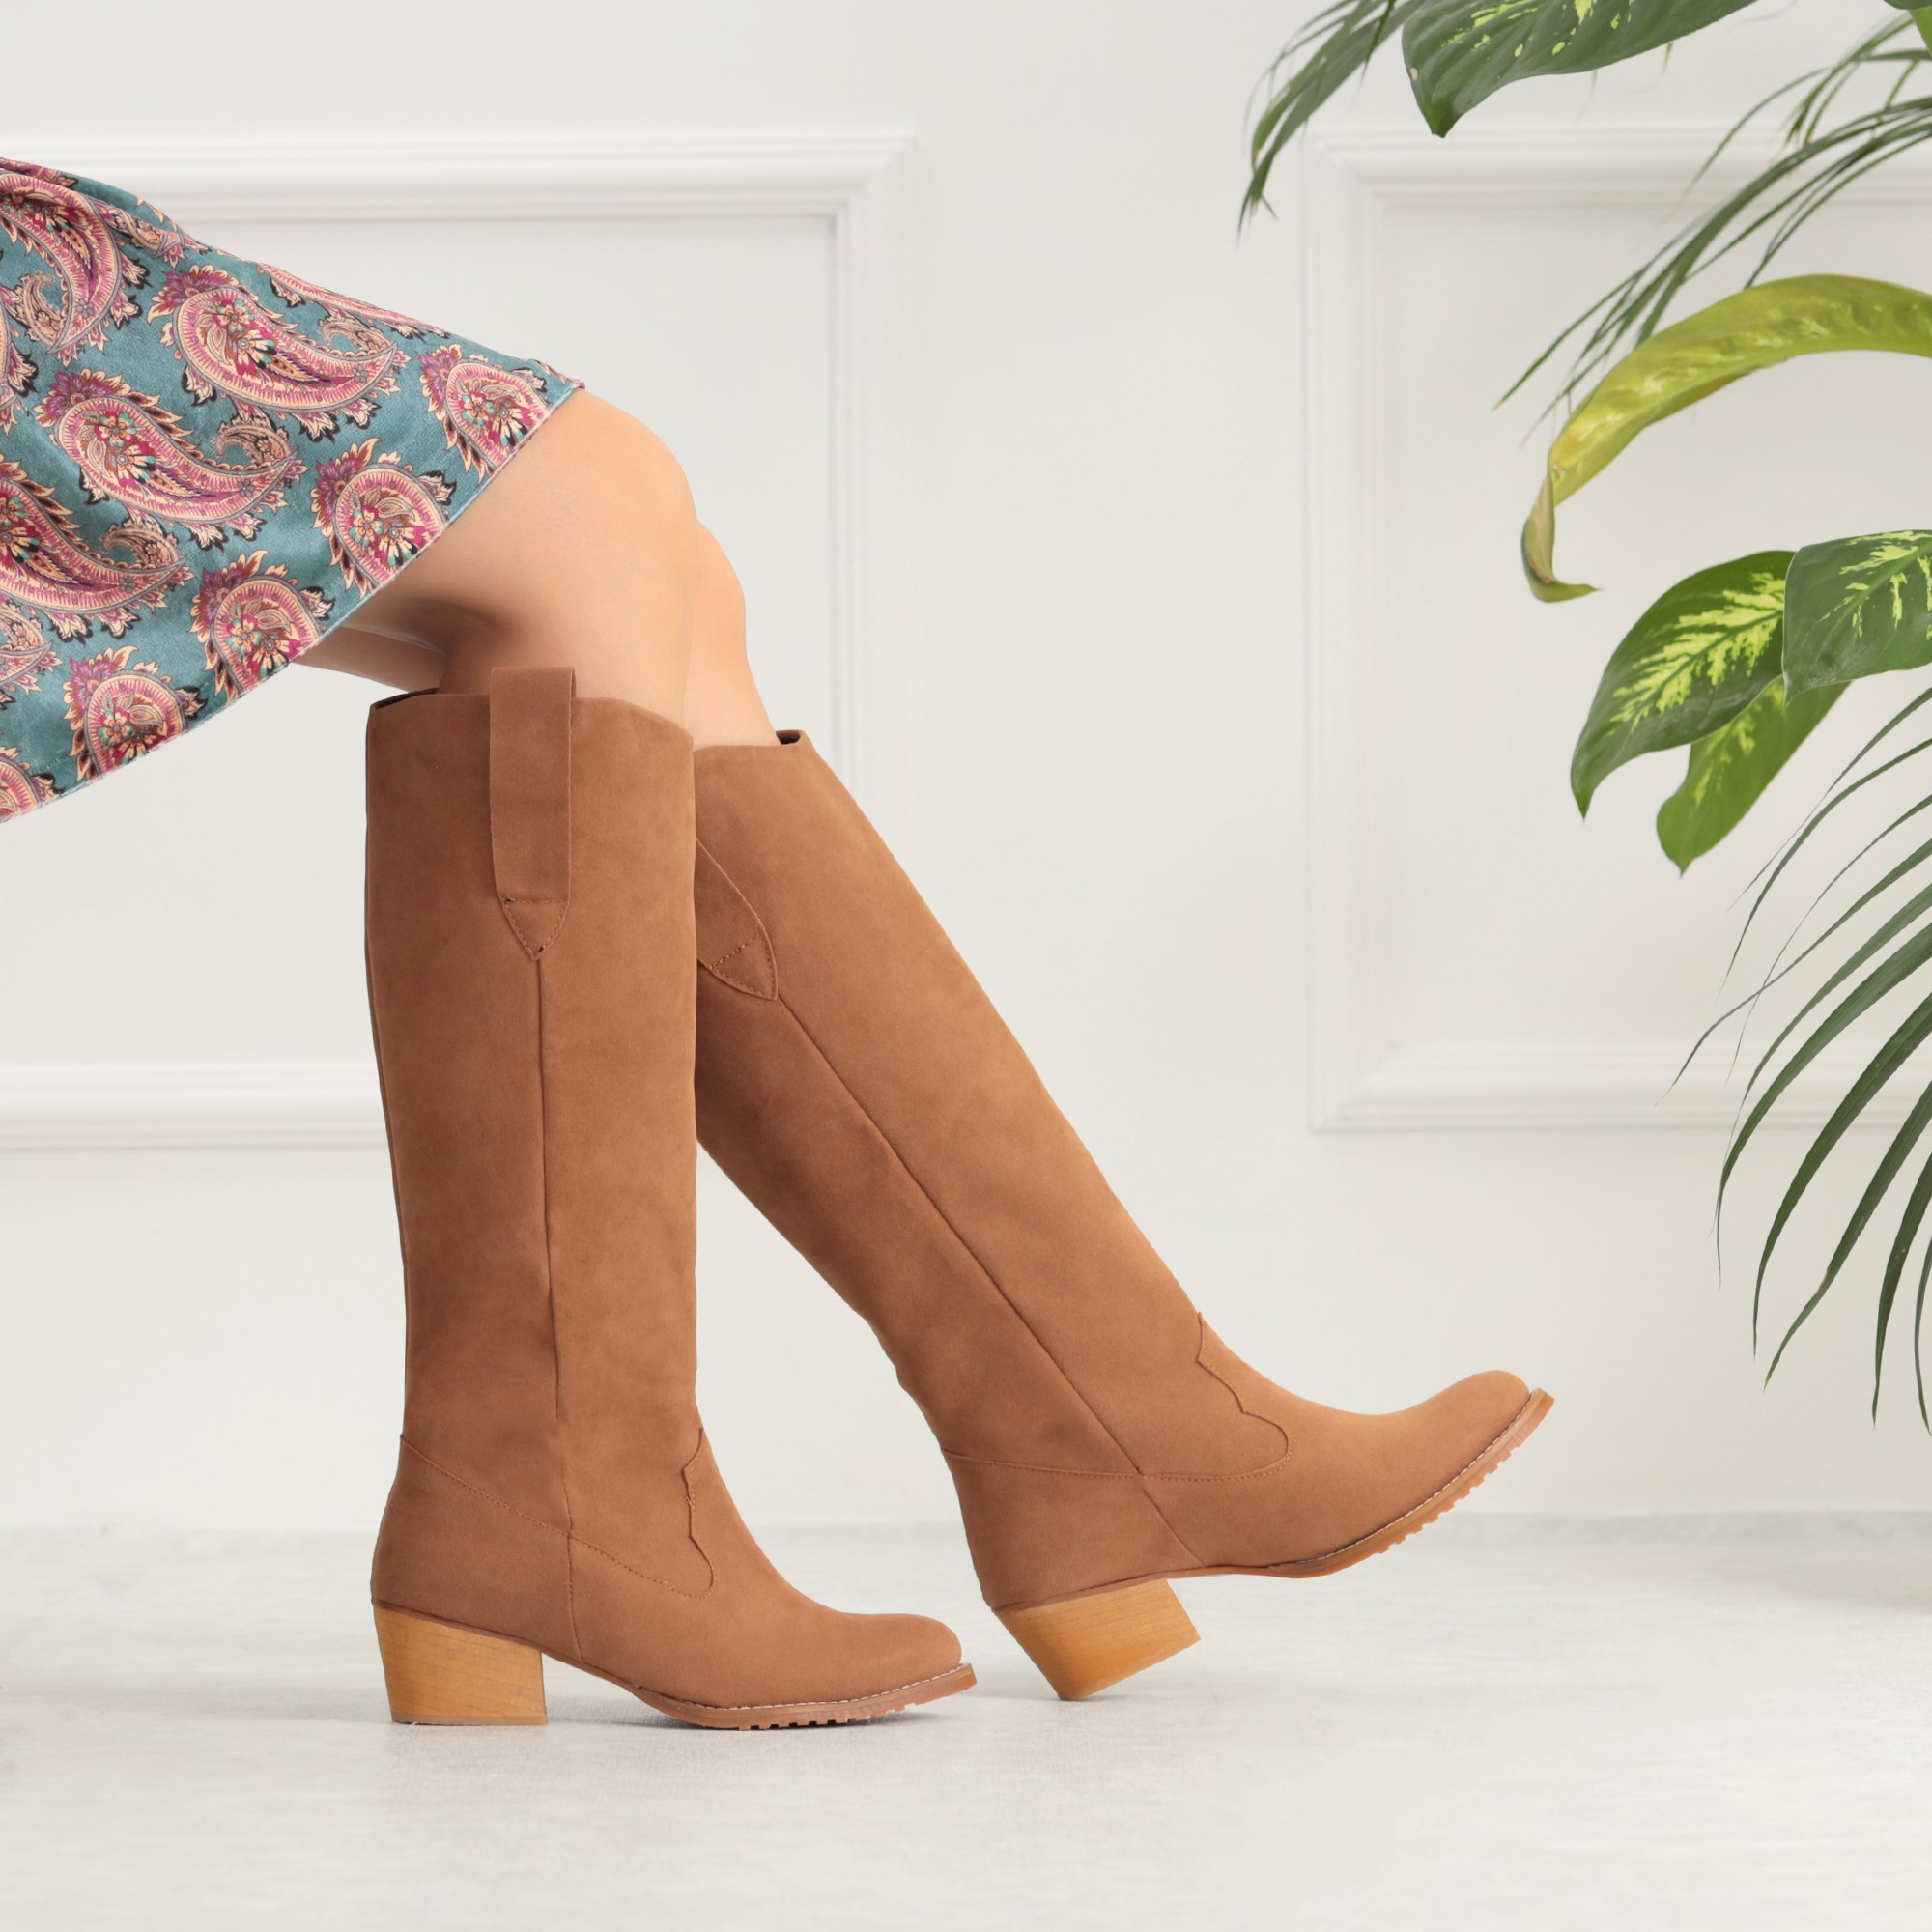 Osterav Suede Taba Colored Short Thick High Heels Boots